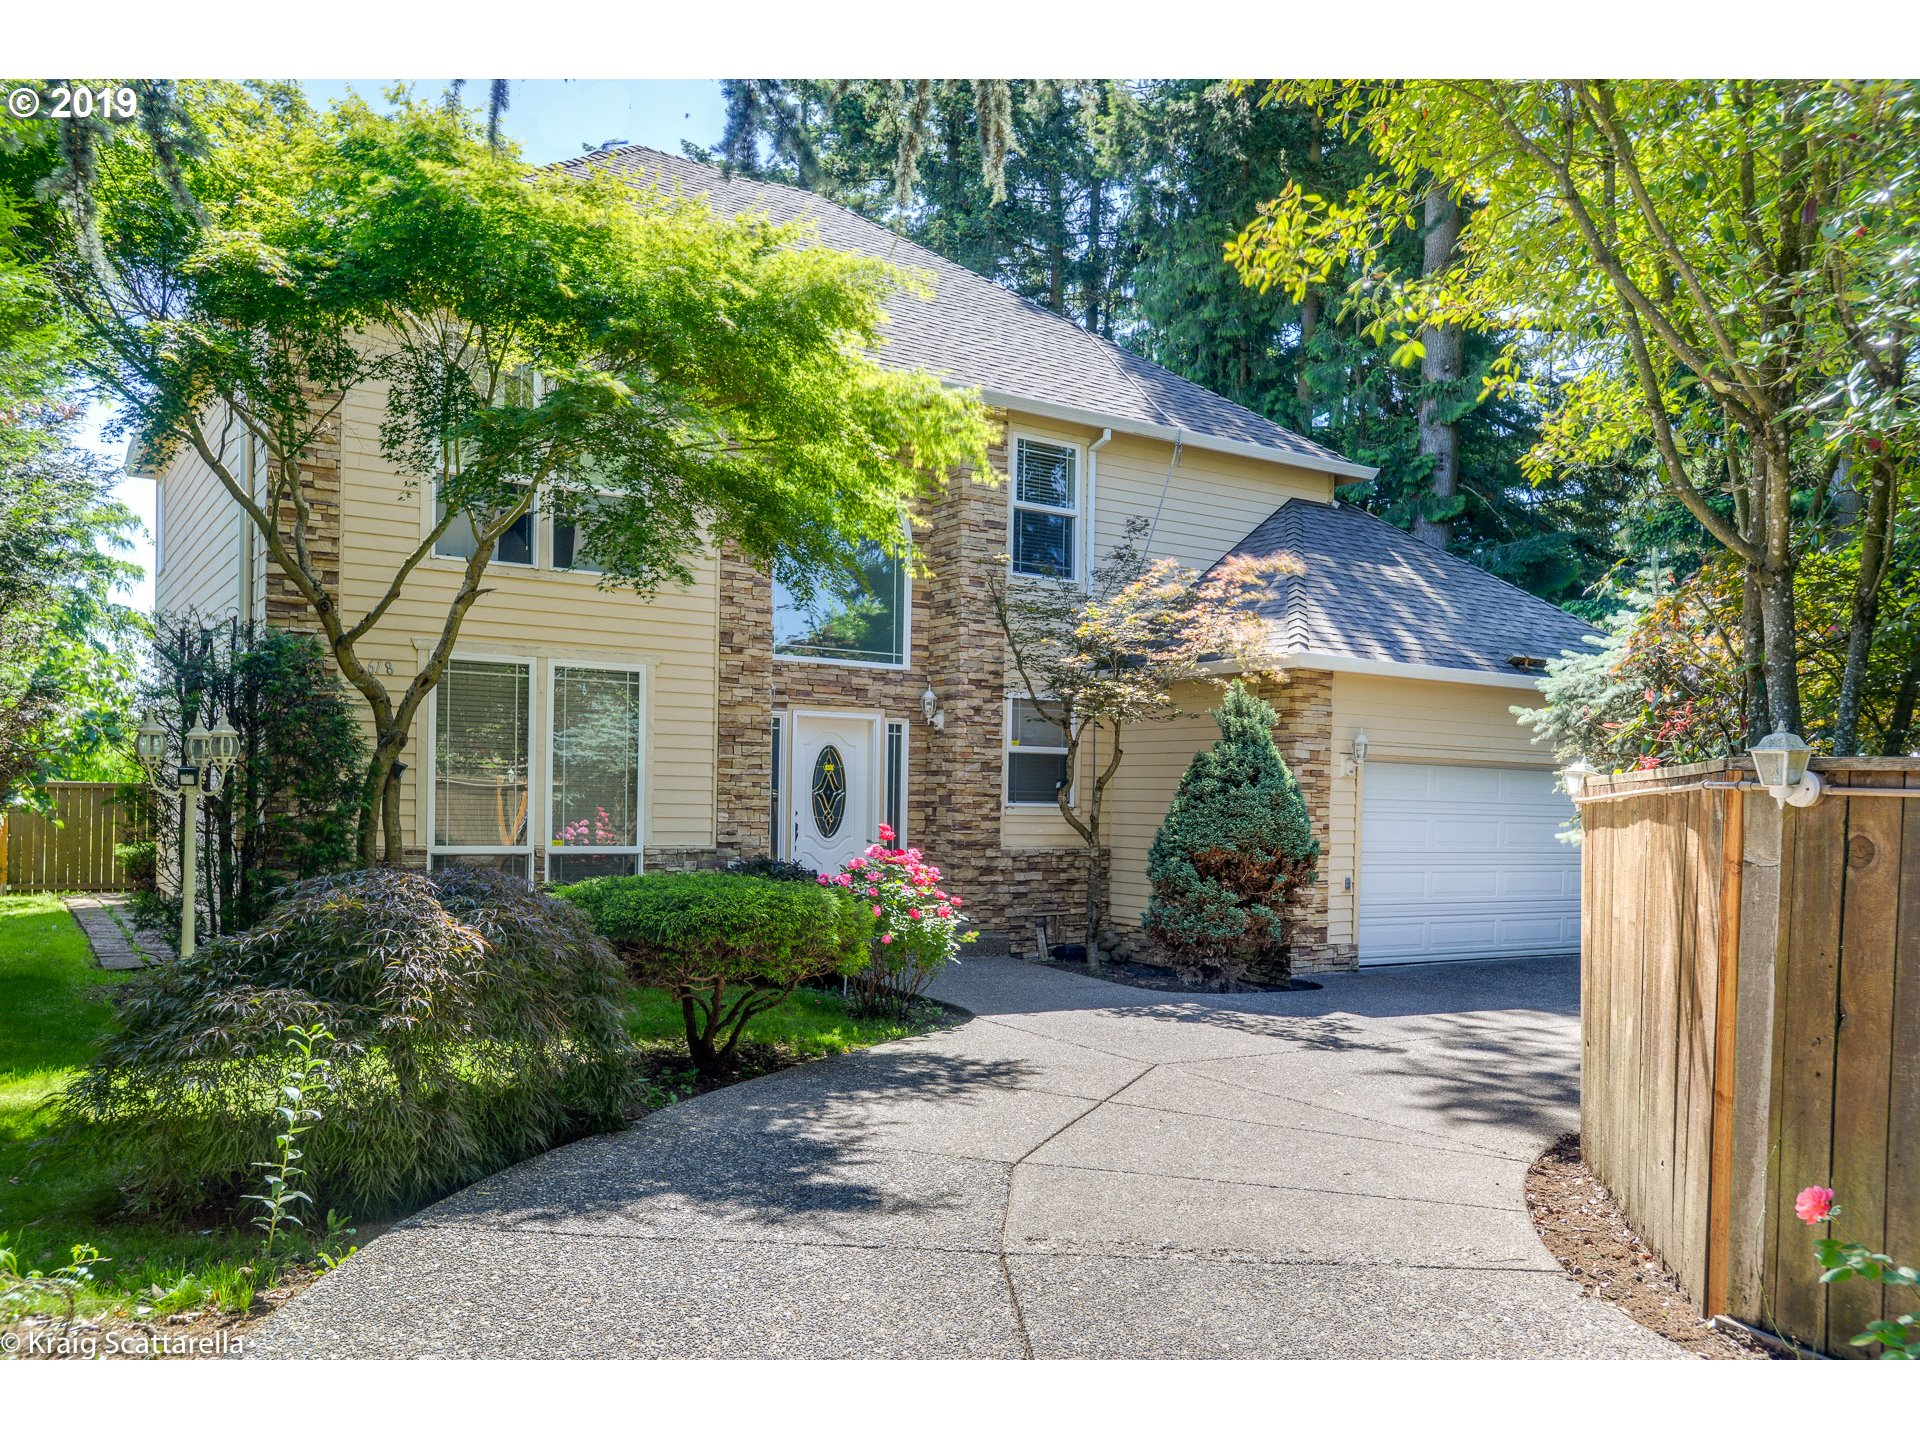 618 SE 141ST AVE Portland Home Listings - The Rob Levy Team Real Estate